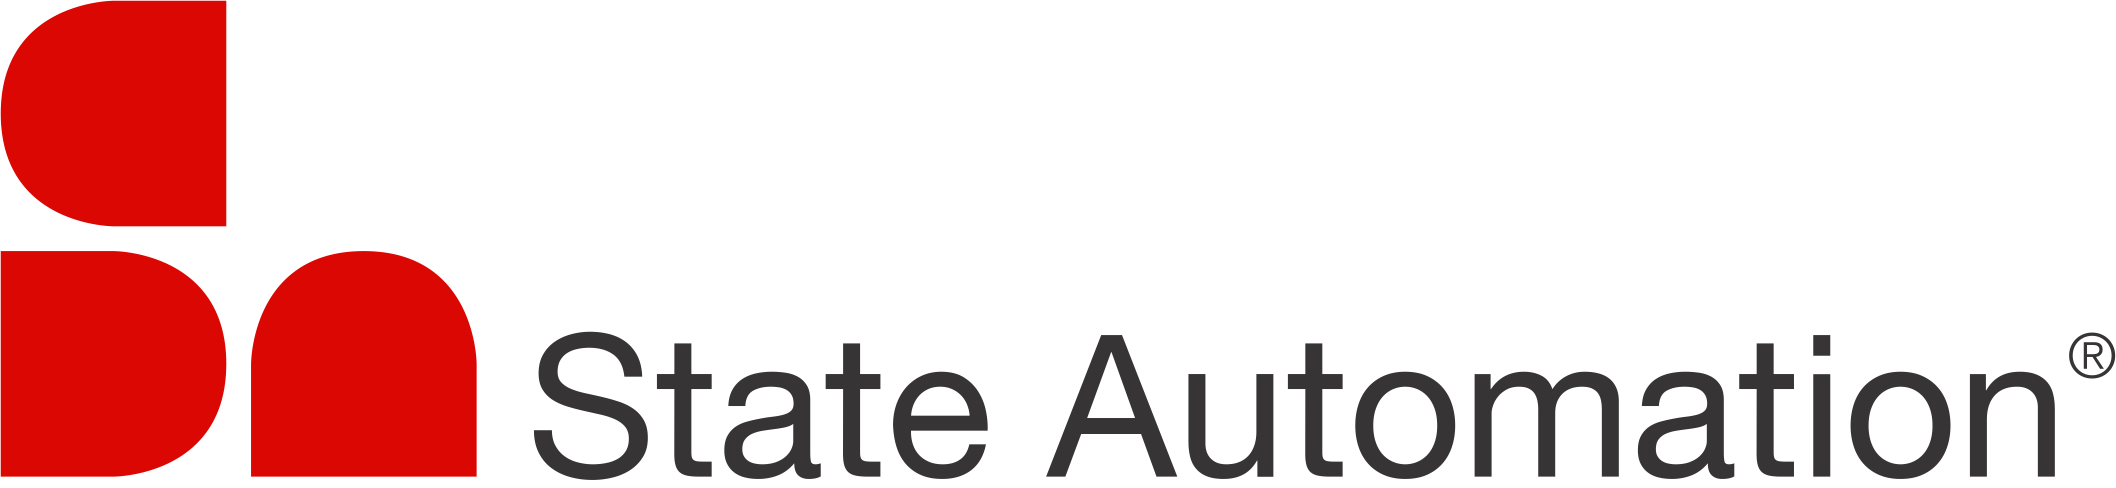 State Automation